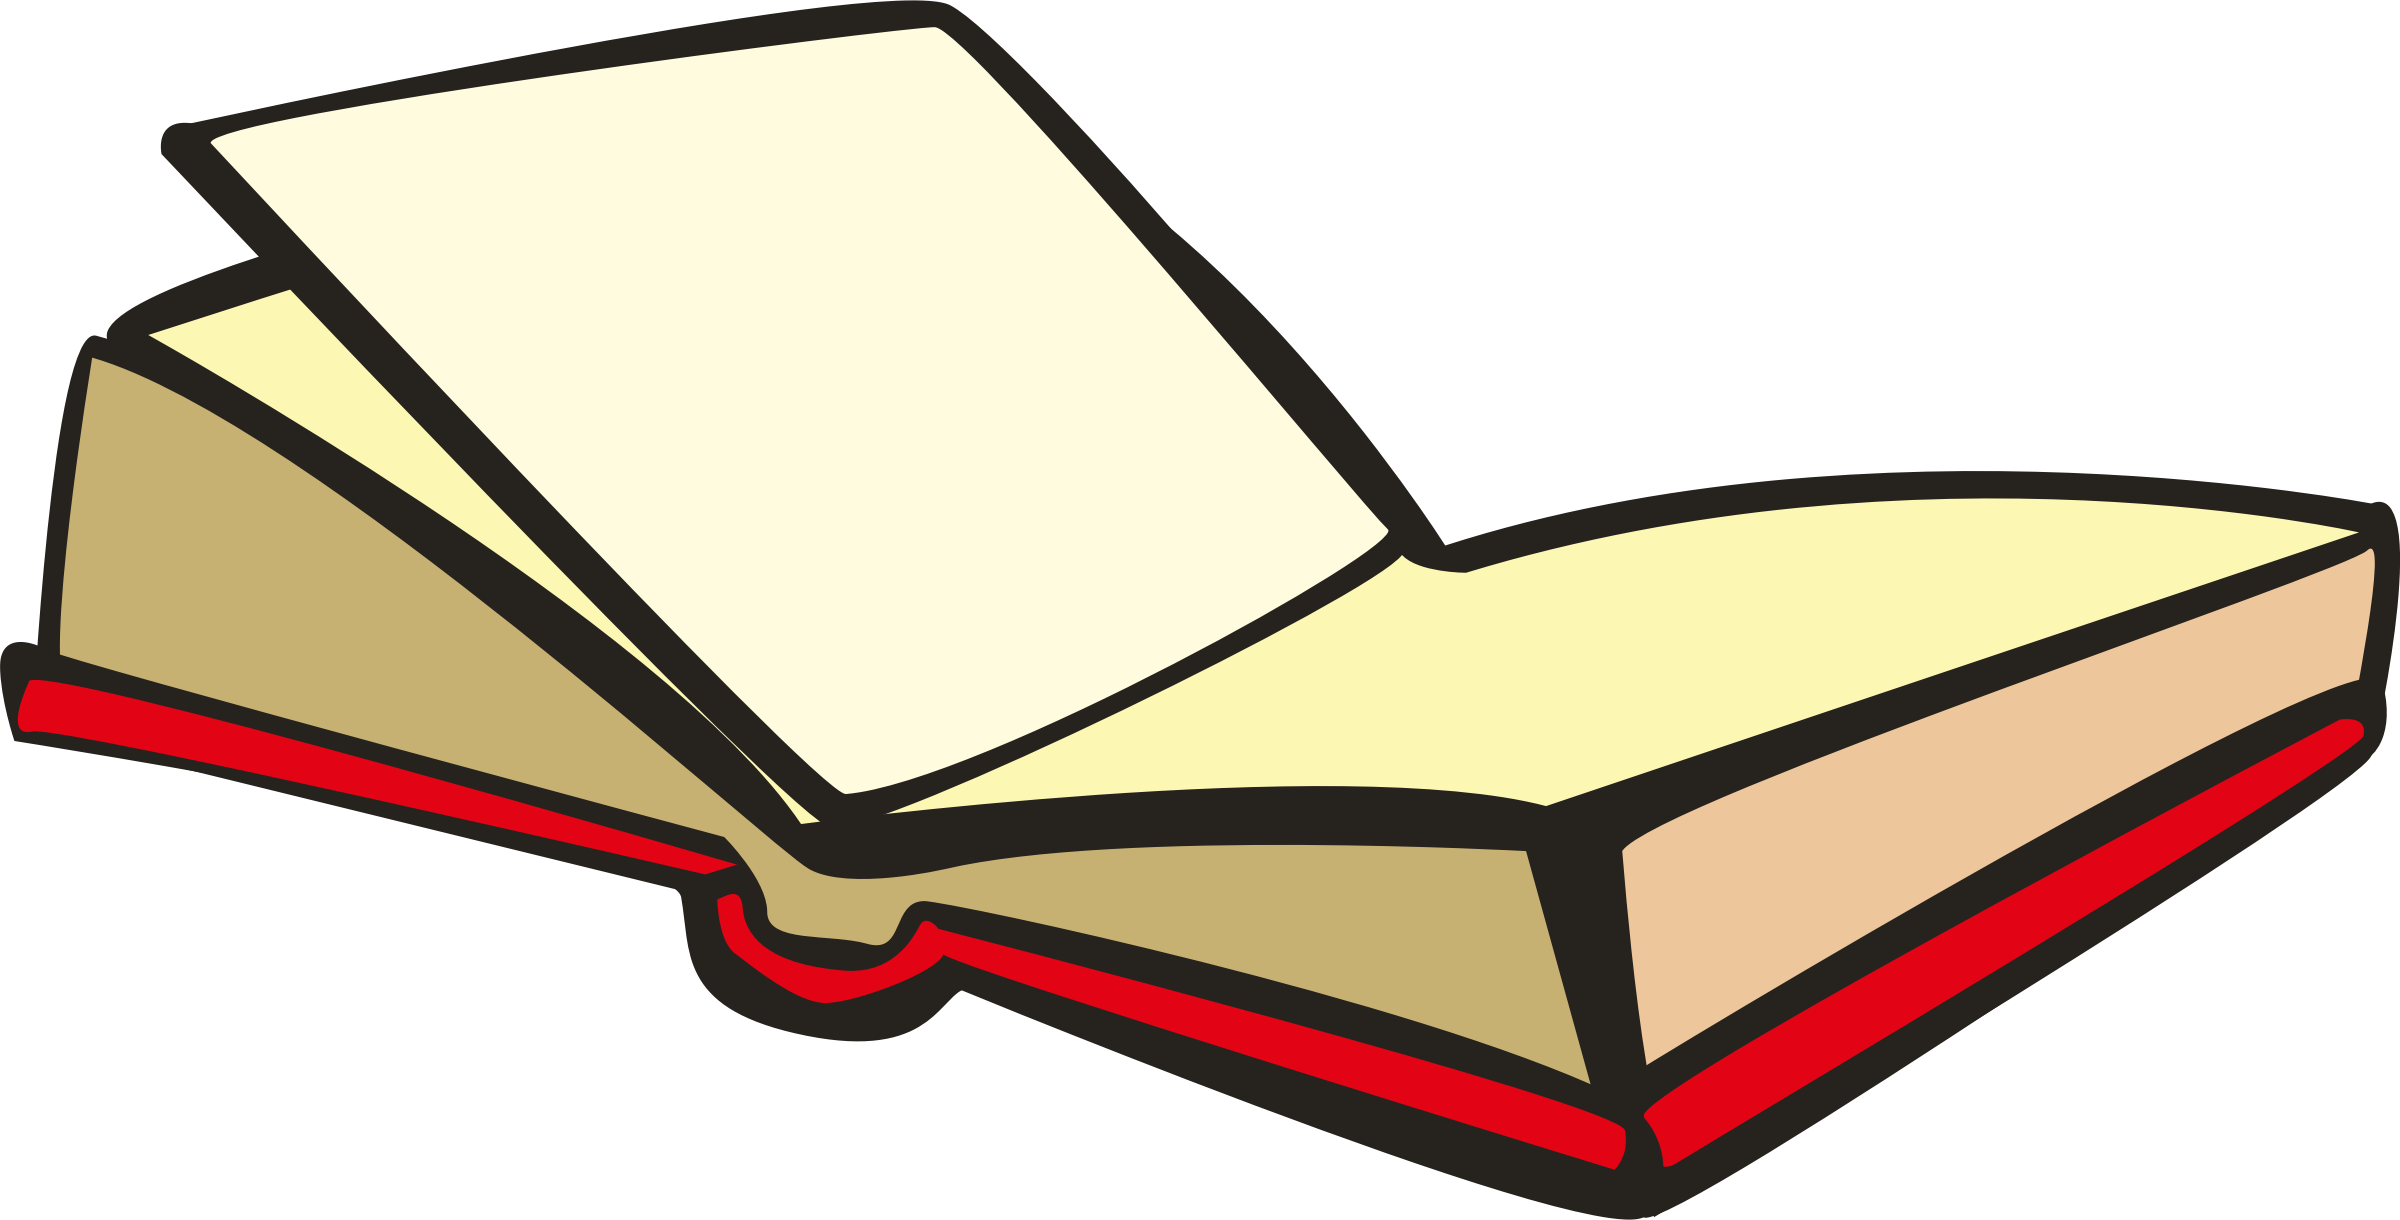 Text clipart opened book. Open big image png